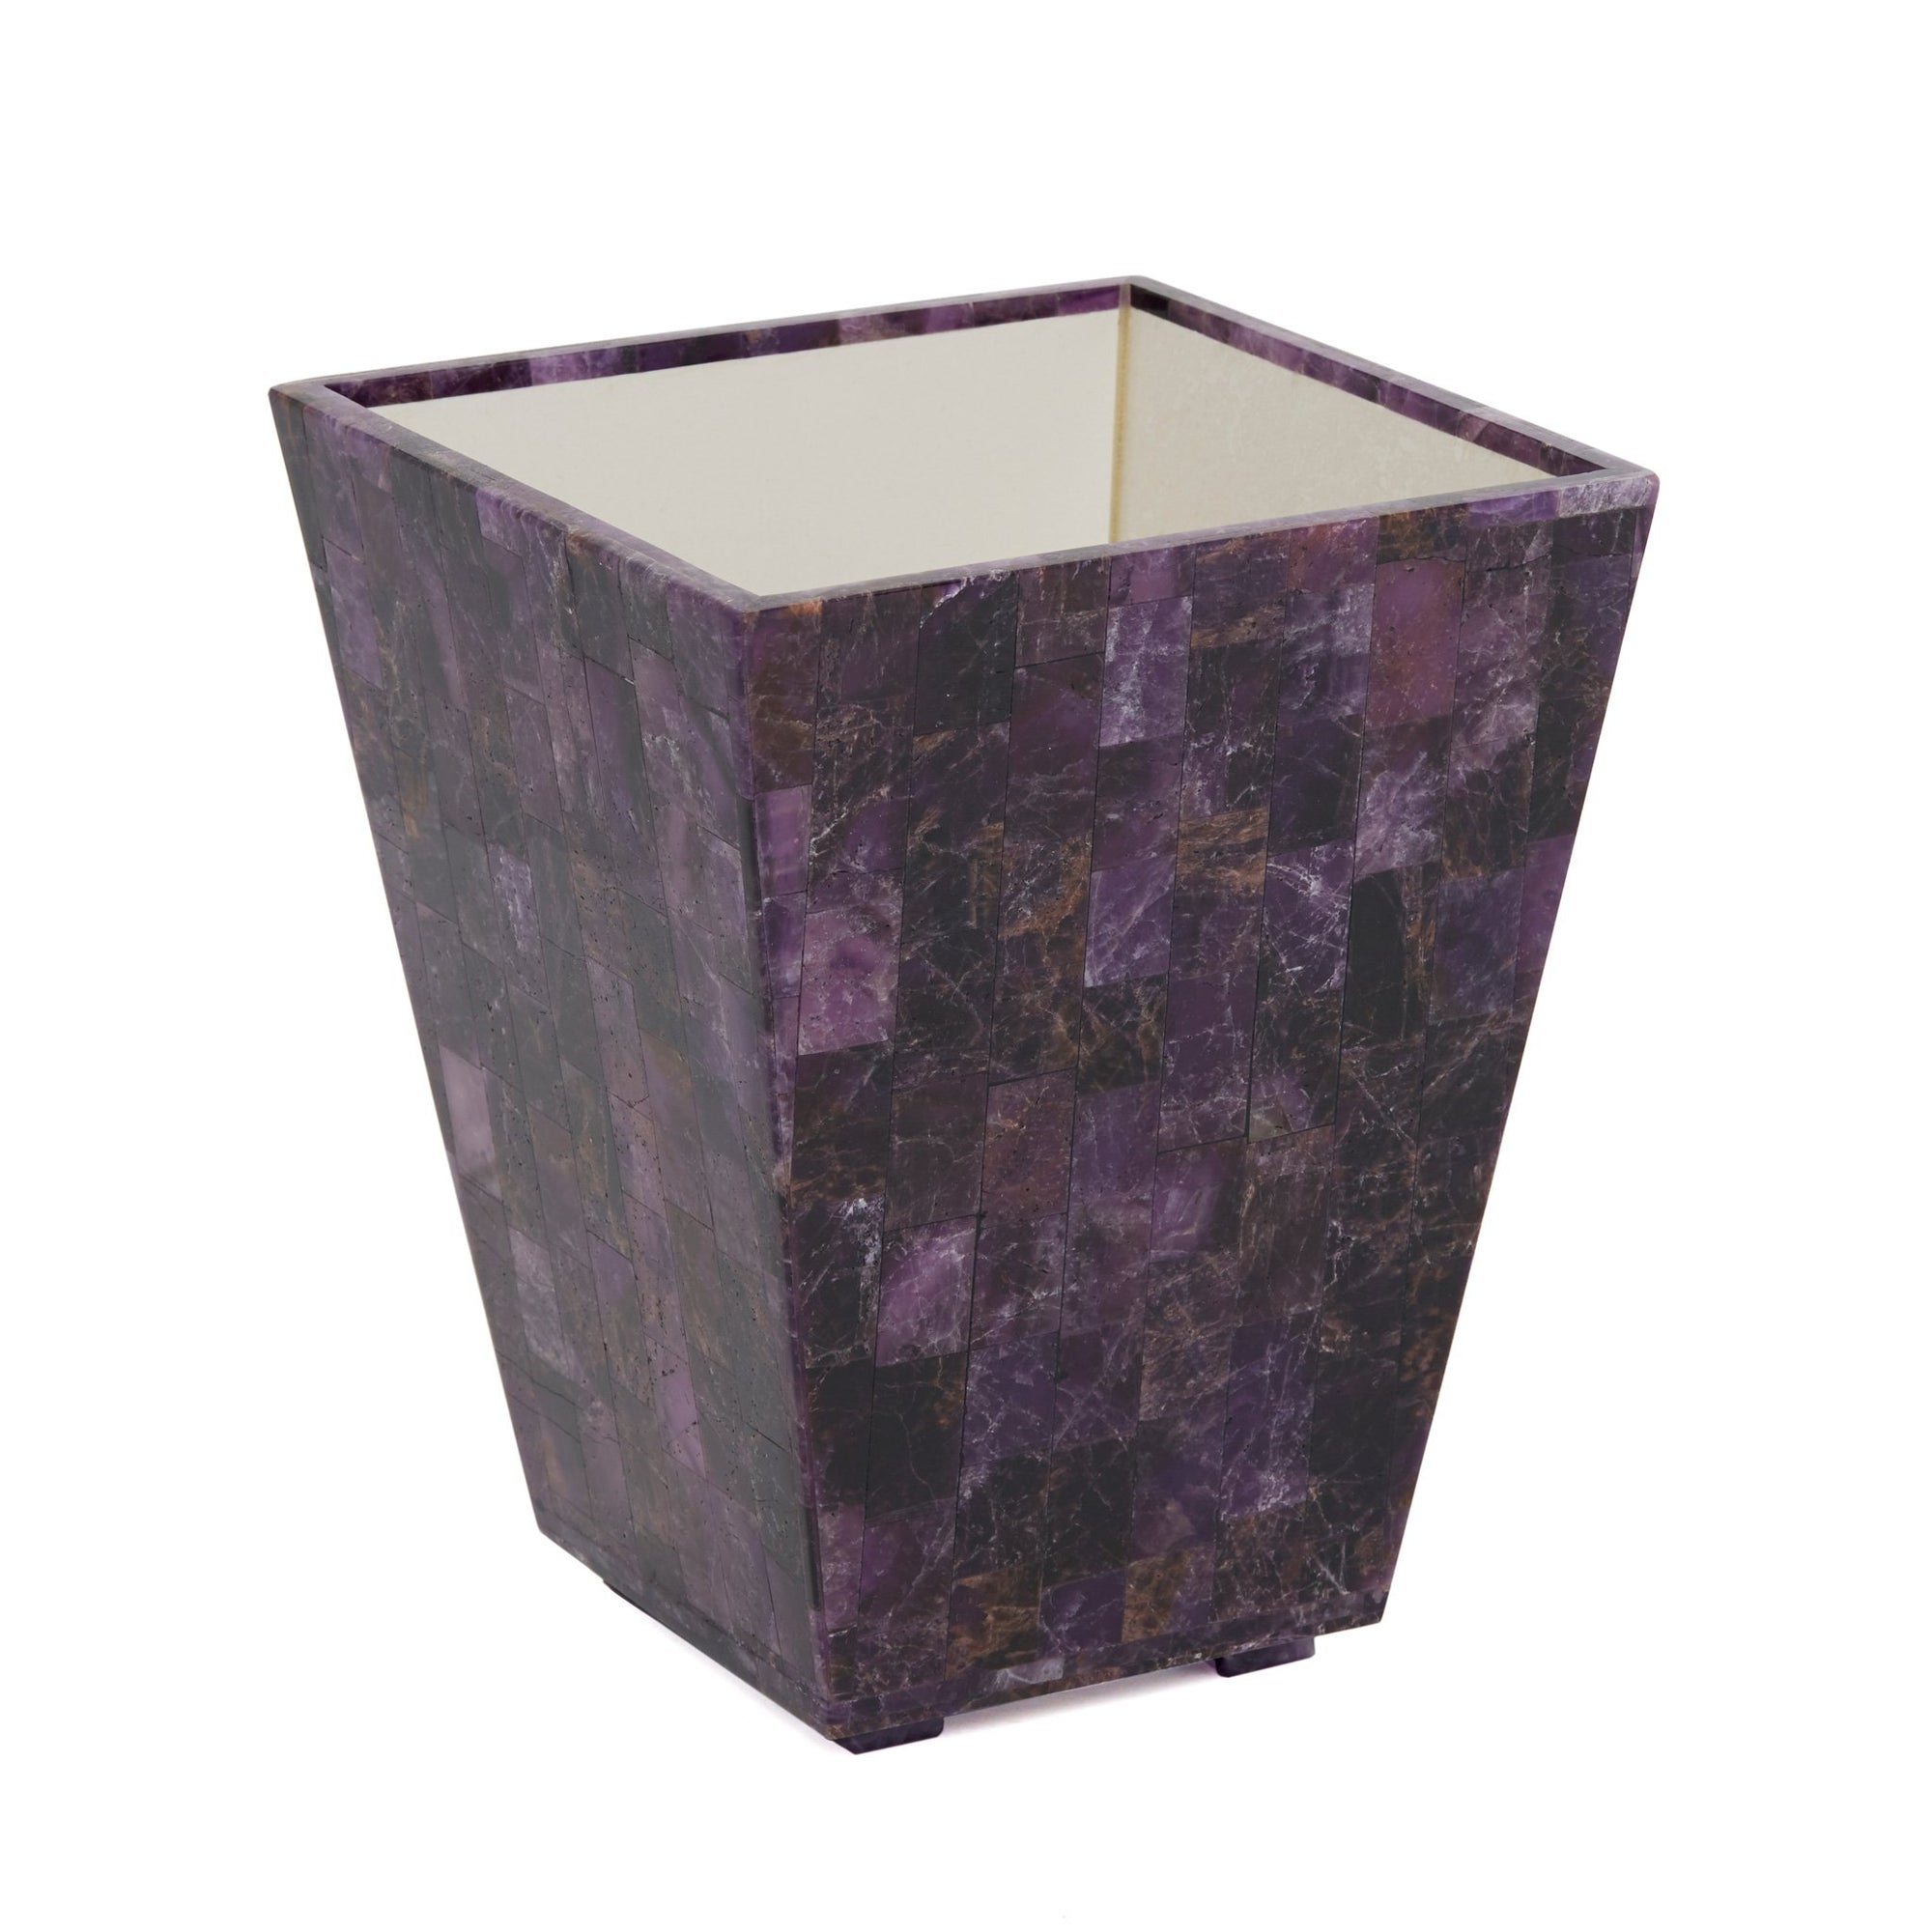 3359-AMET Sherle Wagner International Knurled Waste Bin with Rose Quartz insert in Gold Plate metal finish